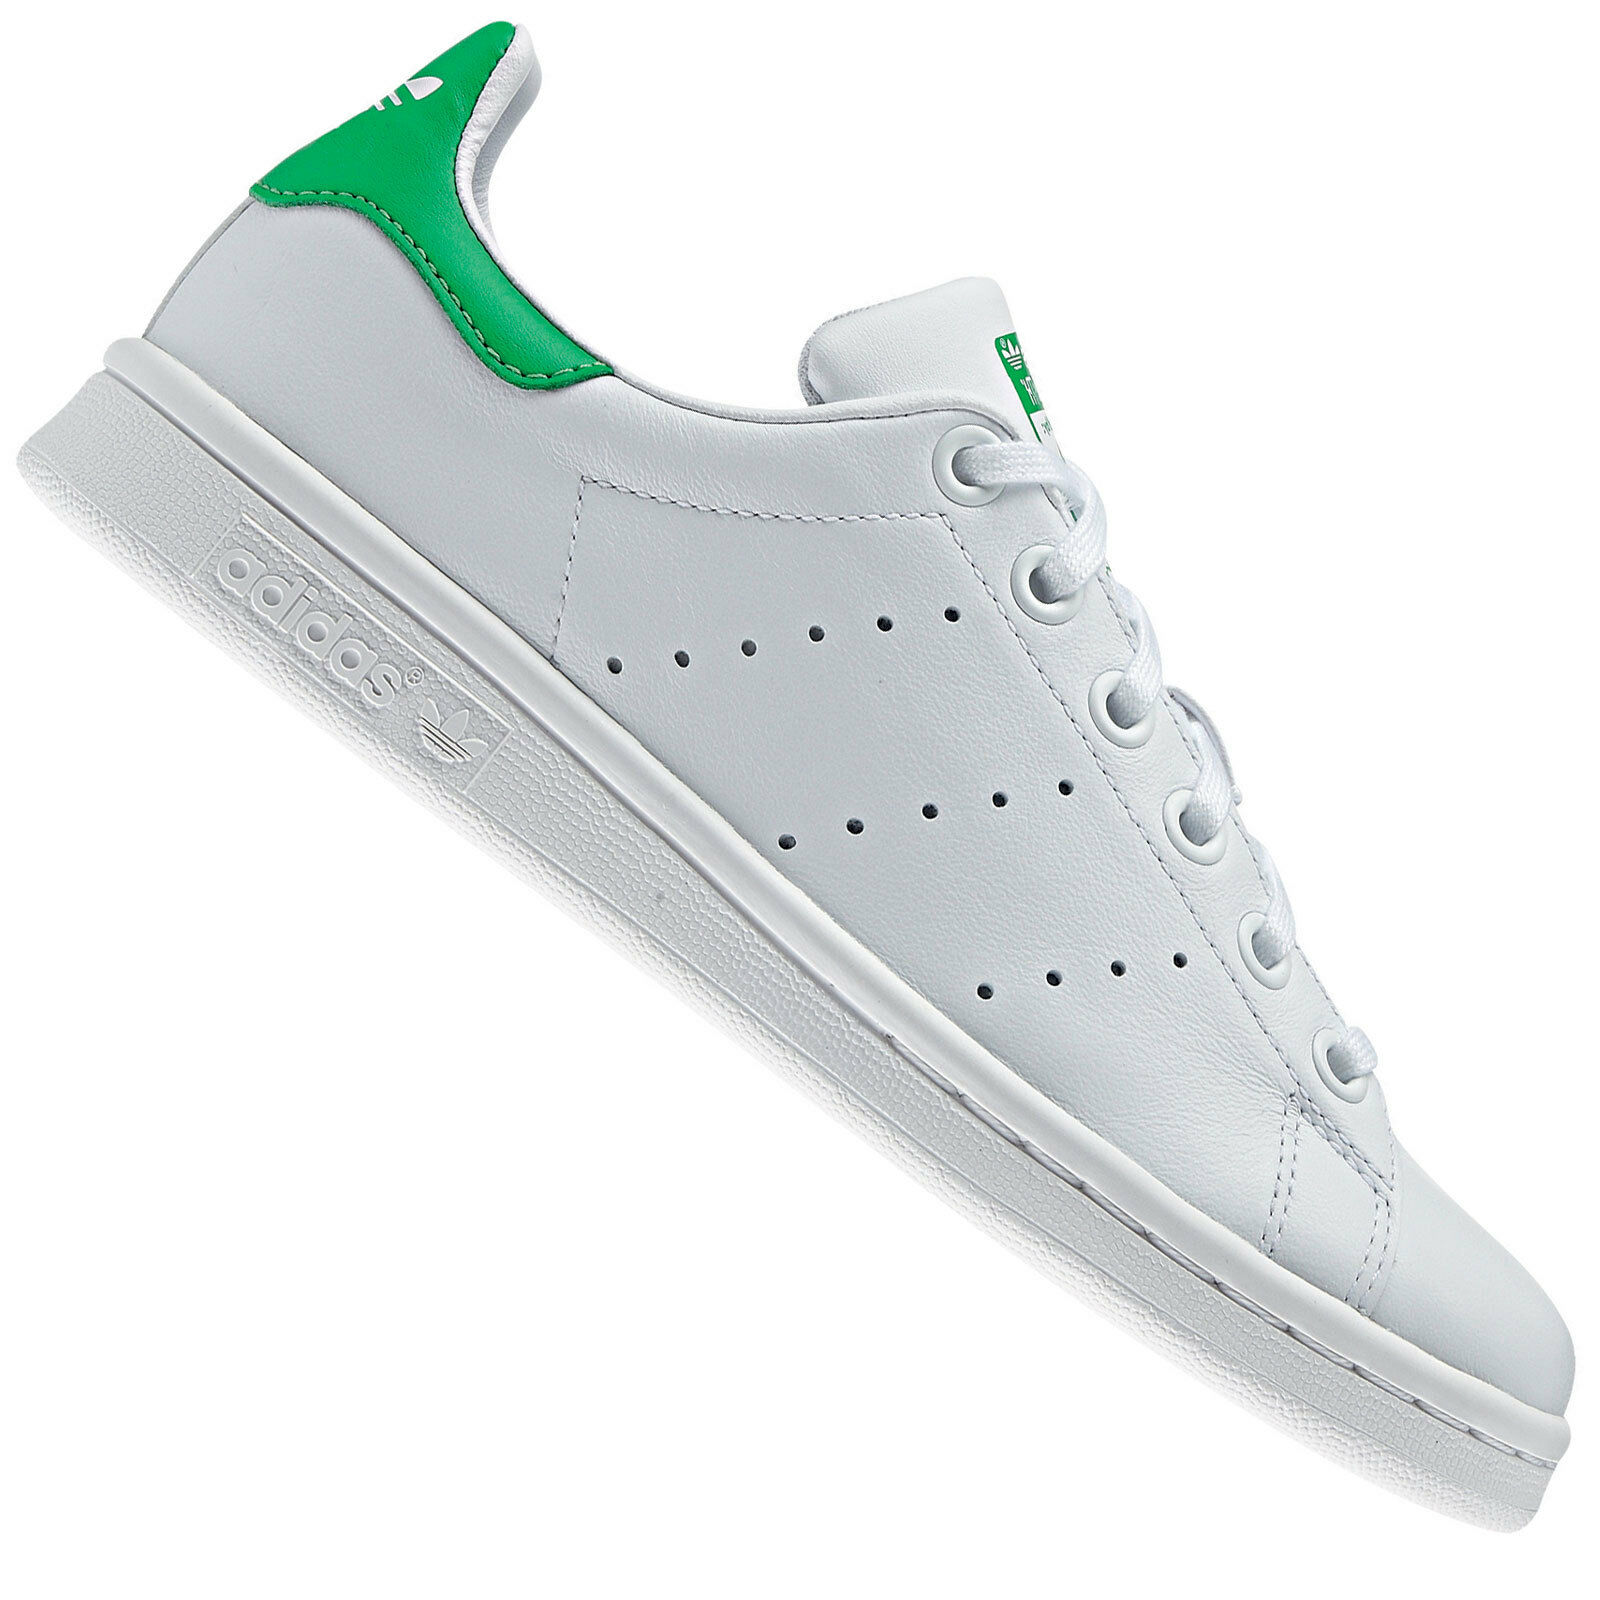 Adidas Originals para Stan Smith J señora para Originals zapatillas de m20605 Blanco/Verde zapatillas de deporte zapatos 26833d